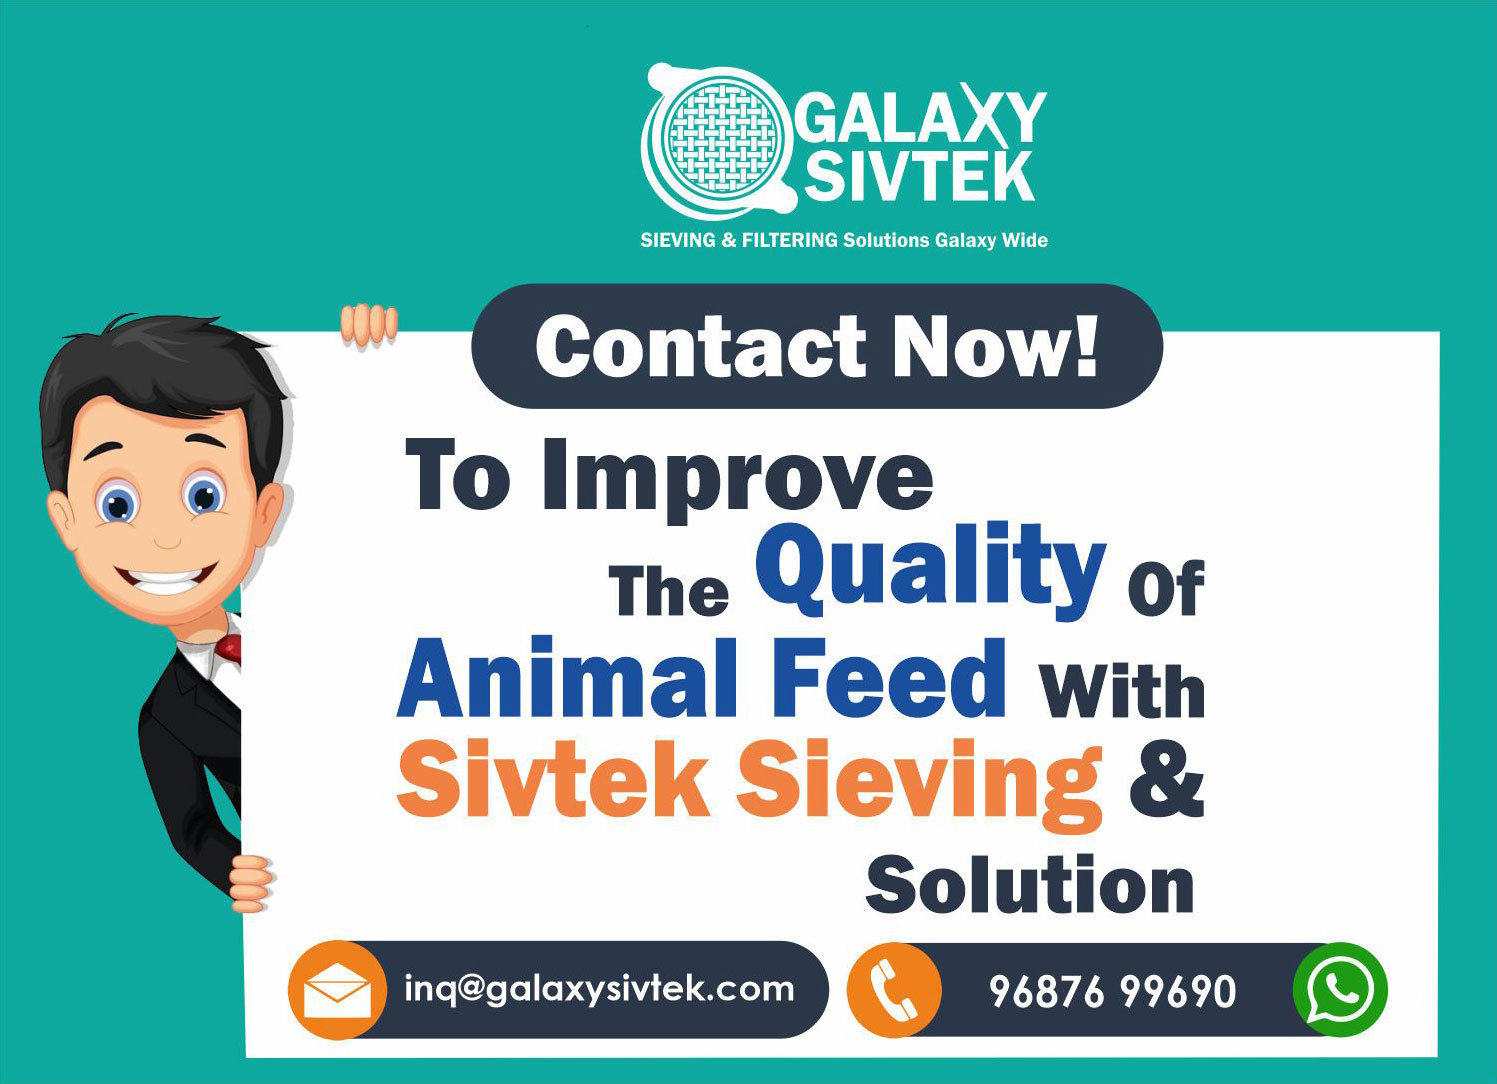 Sieving Animal Feed - Contact us